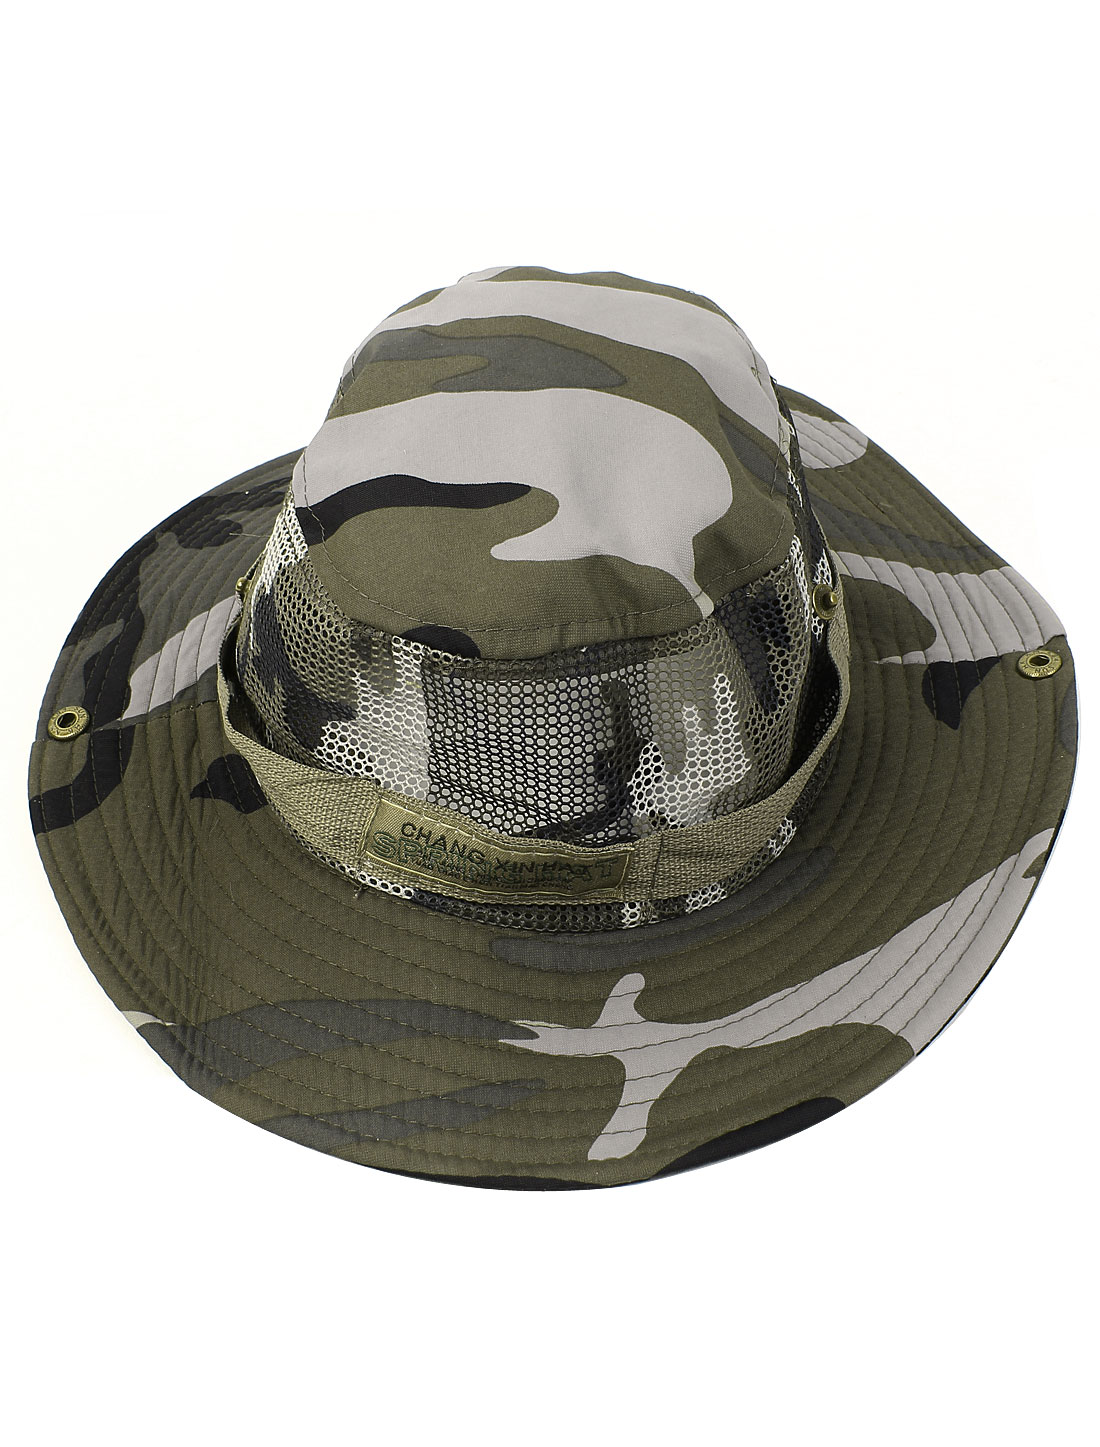 Army Green Camouflage Pattern Round Brim Mesh Bucket Hiking Outdoor Sports Sun Hat Cap for Man